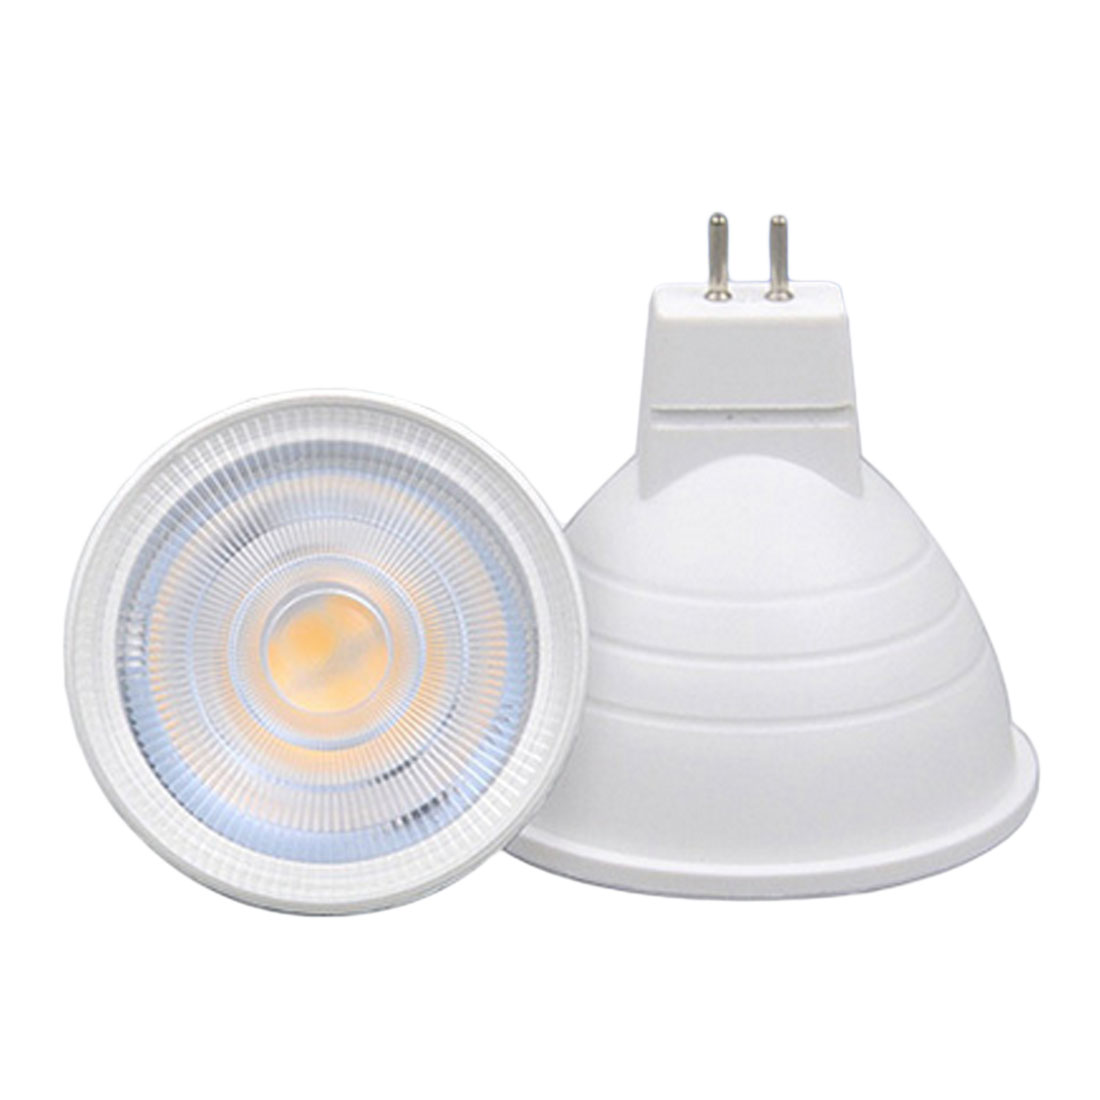 GU10 MR16 LED Bulb 6W 220V Led Lamp Lampada LED Condenser lamp Diffusion Spotlight Energy Saving Home Lighting LED Bulb